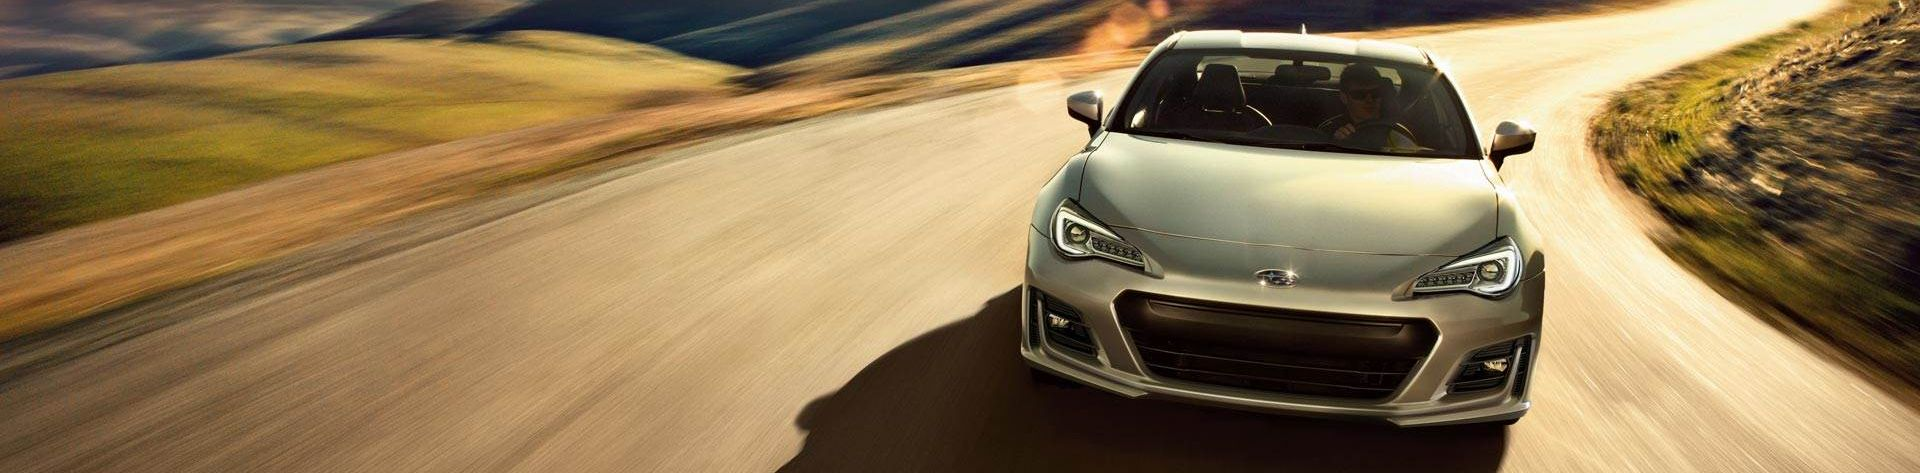 2018 Subaru BRZ for Sale in Sacramento, CA